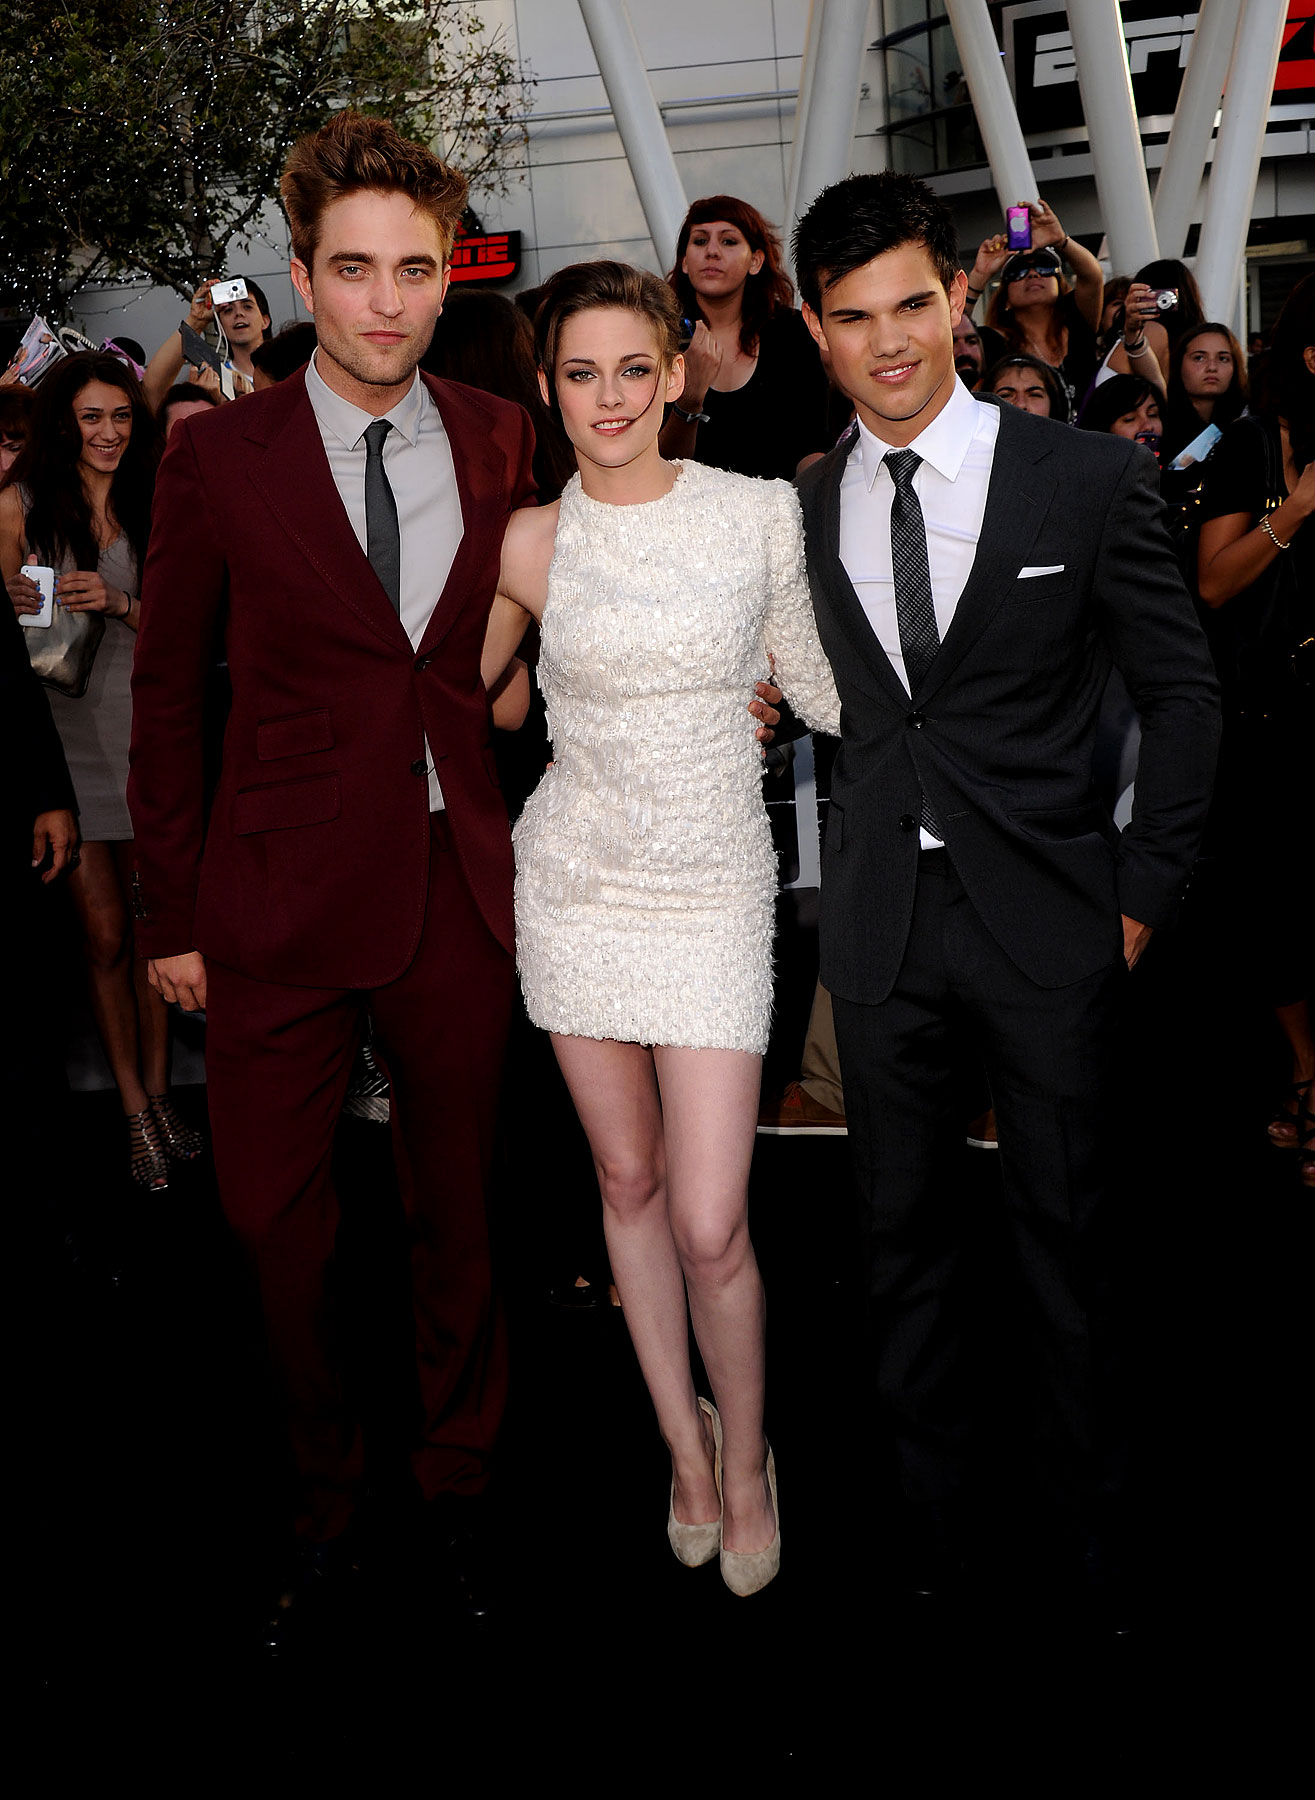 'The Twilight Saga: Eclipse' Premieres in LA (PHOTOS)